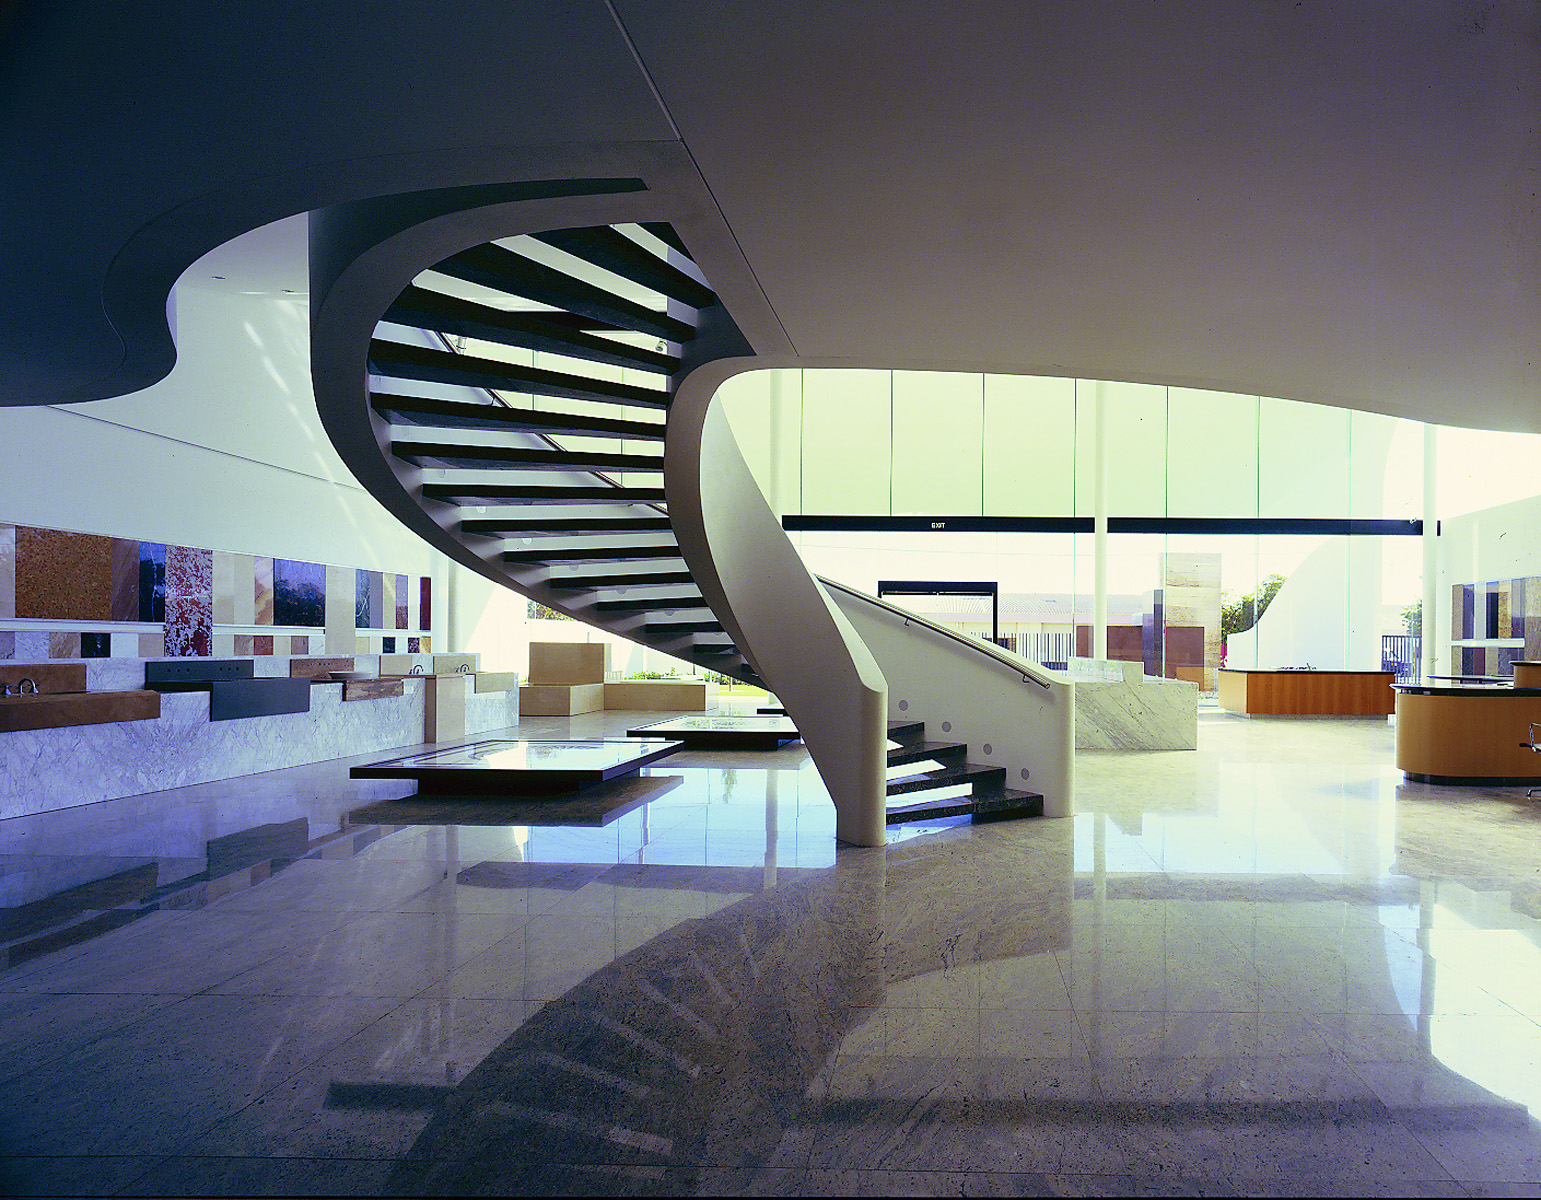 Granite Stone Floor Design Harry Seidler & Associates: Arca Showroom